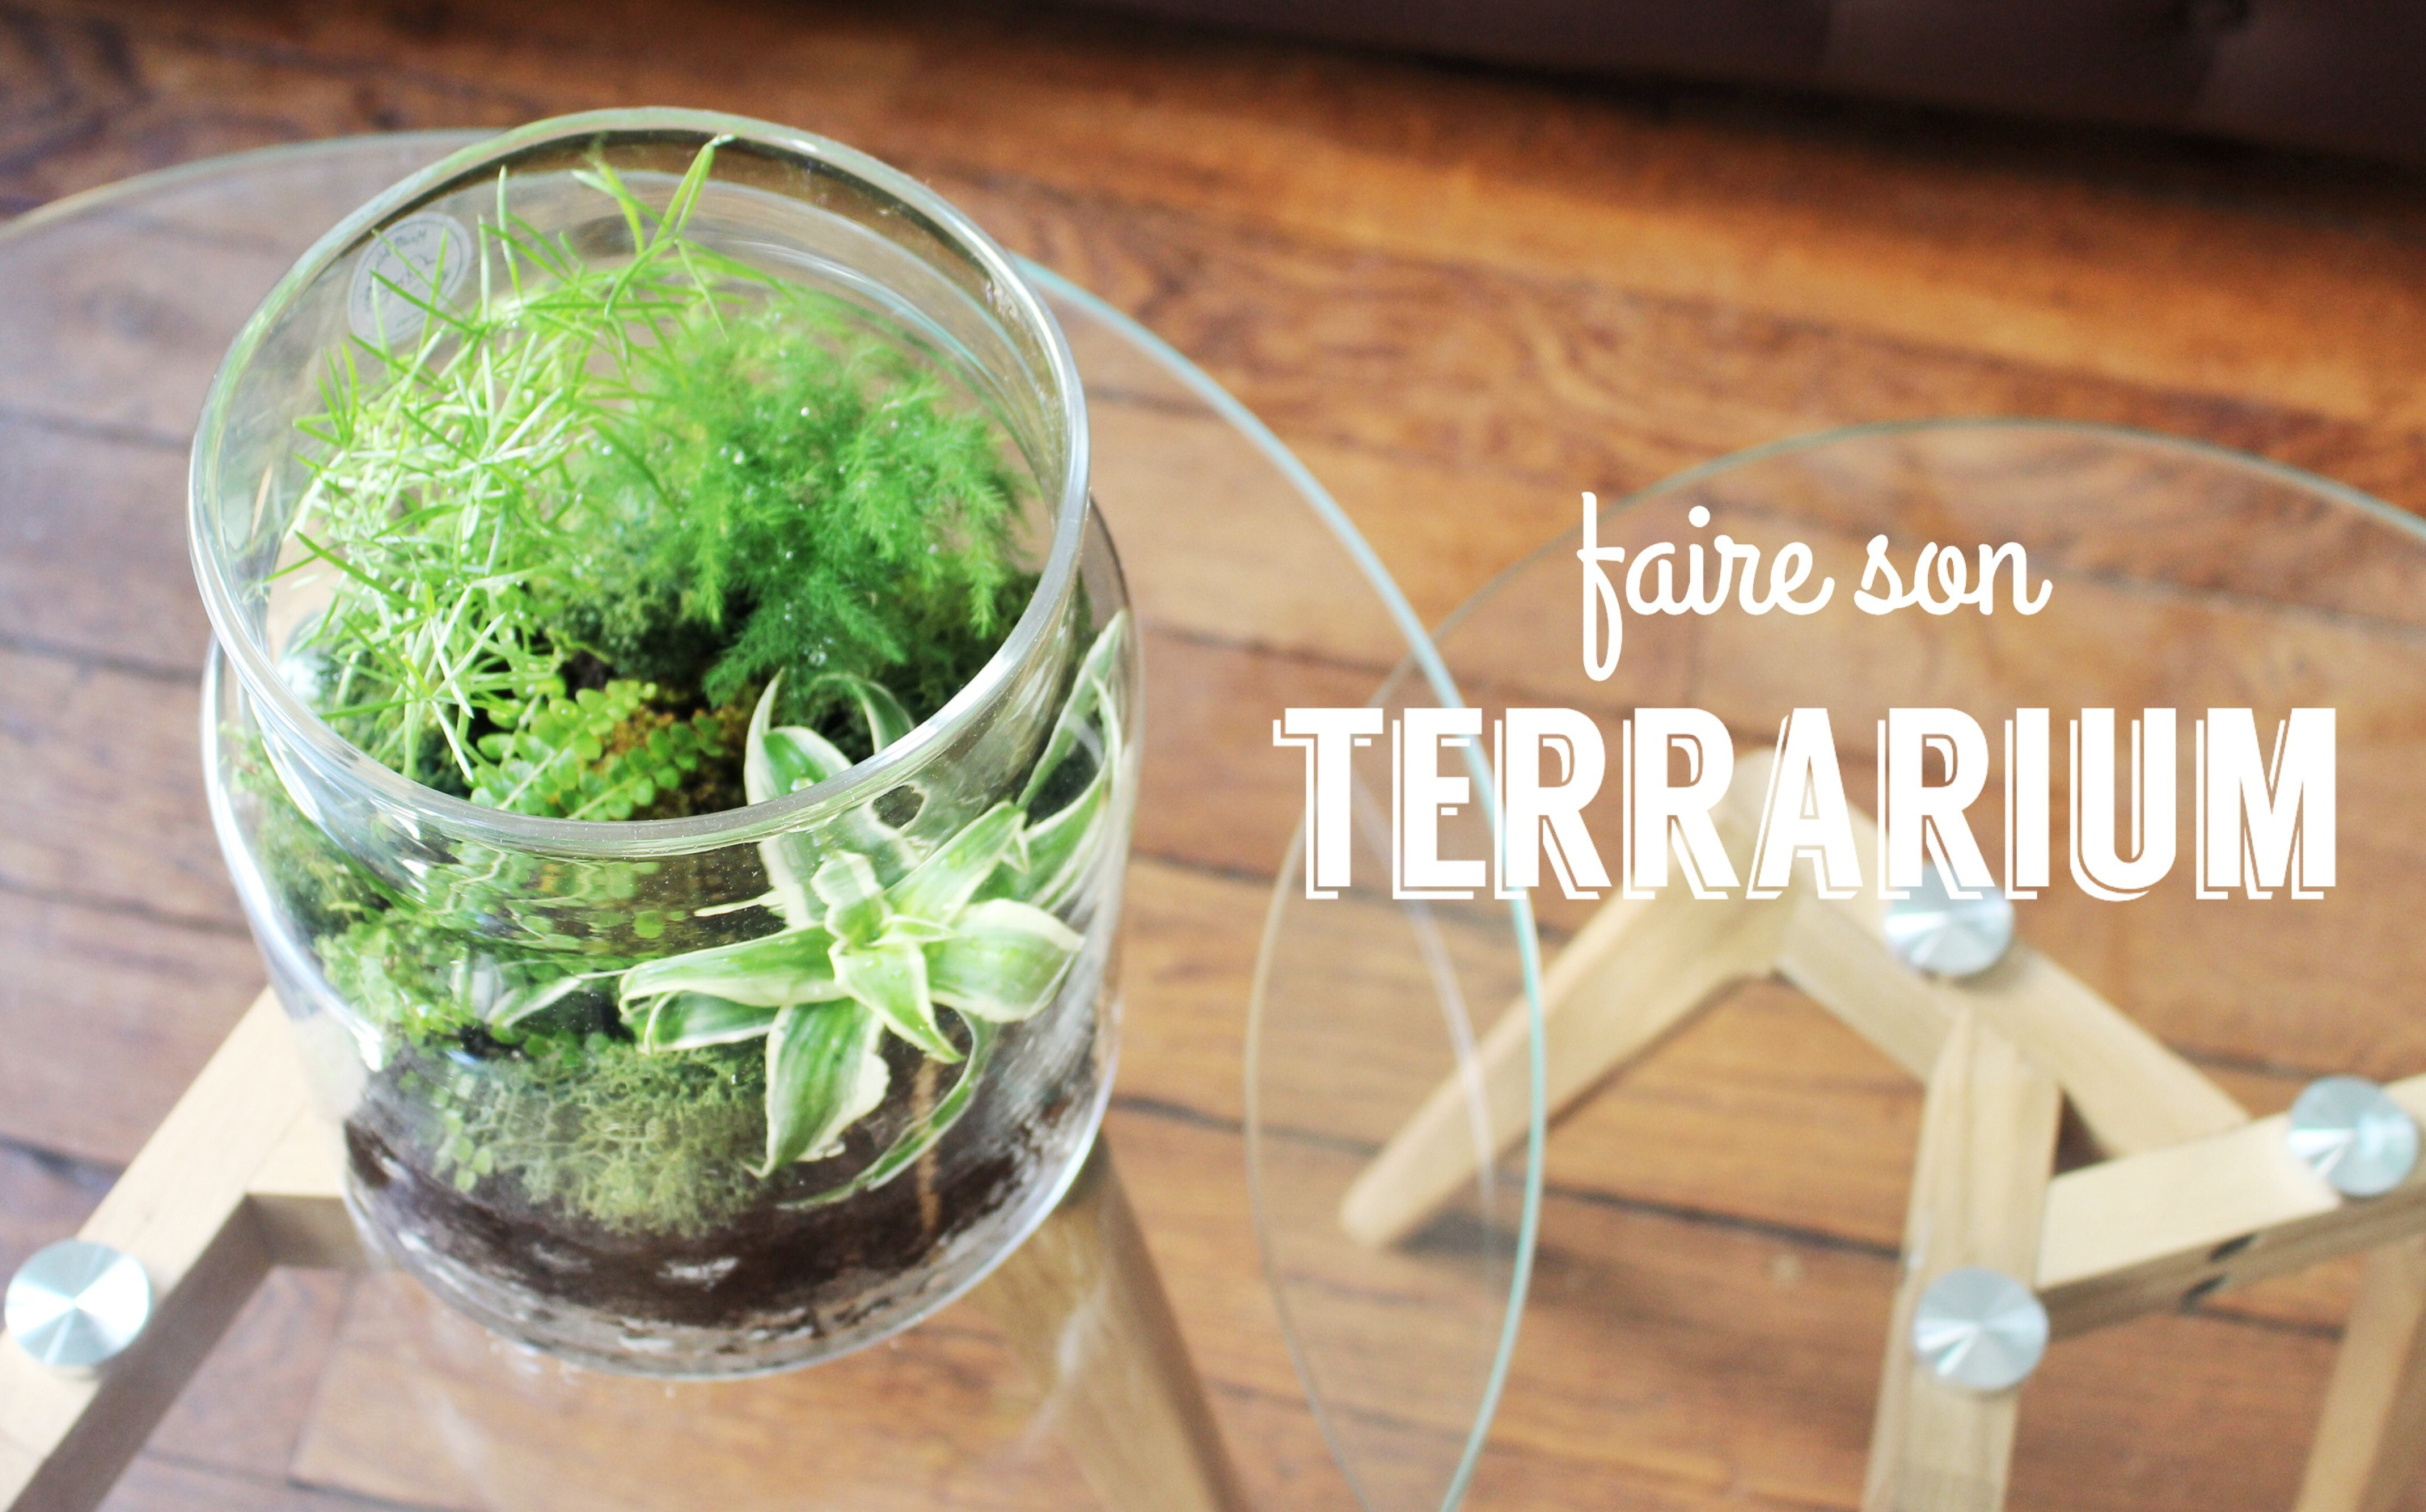 diy faire un terrarium mes derni res lubies. Black Bedroom Furniture Sets. Home Design Ideas